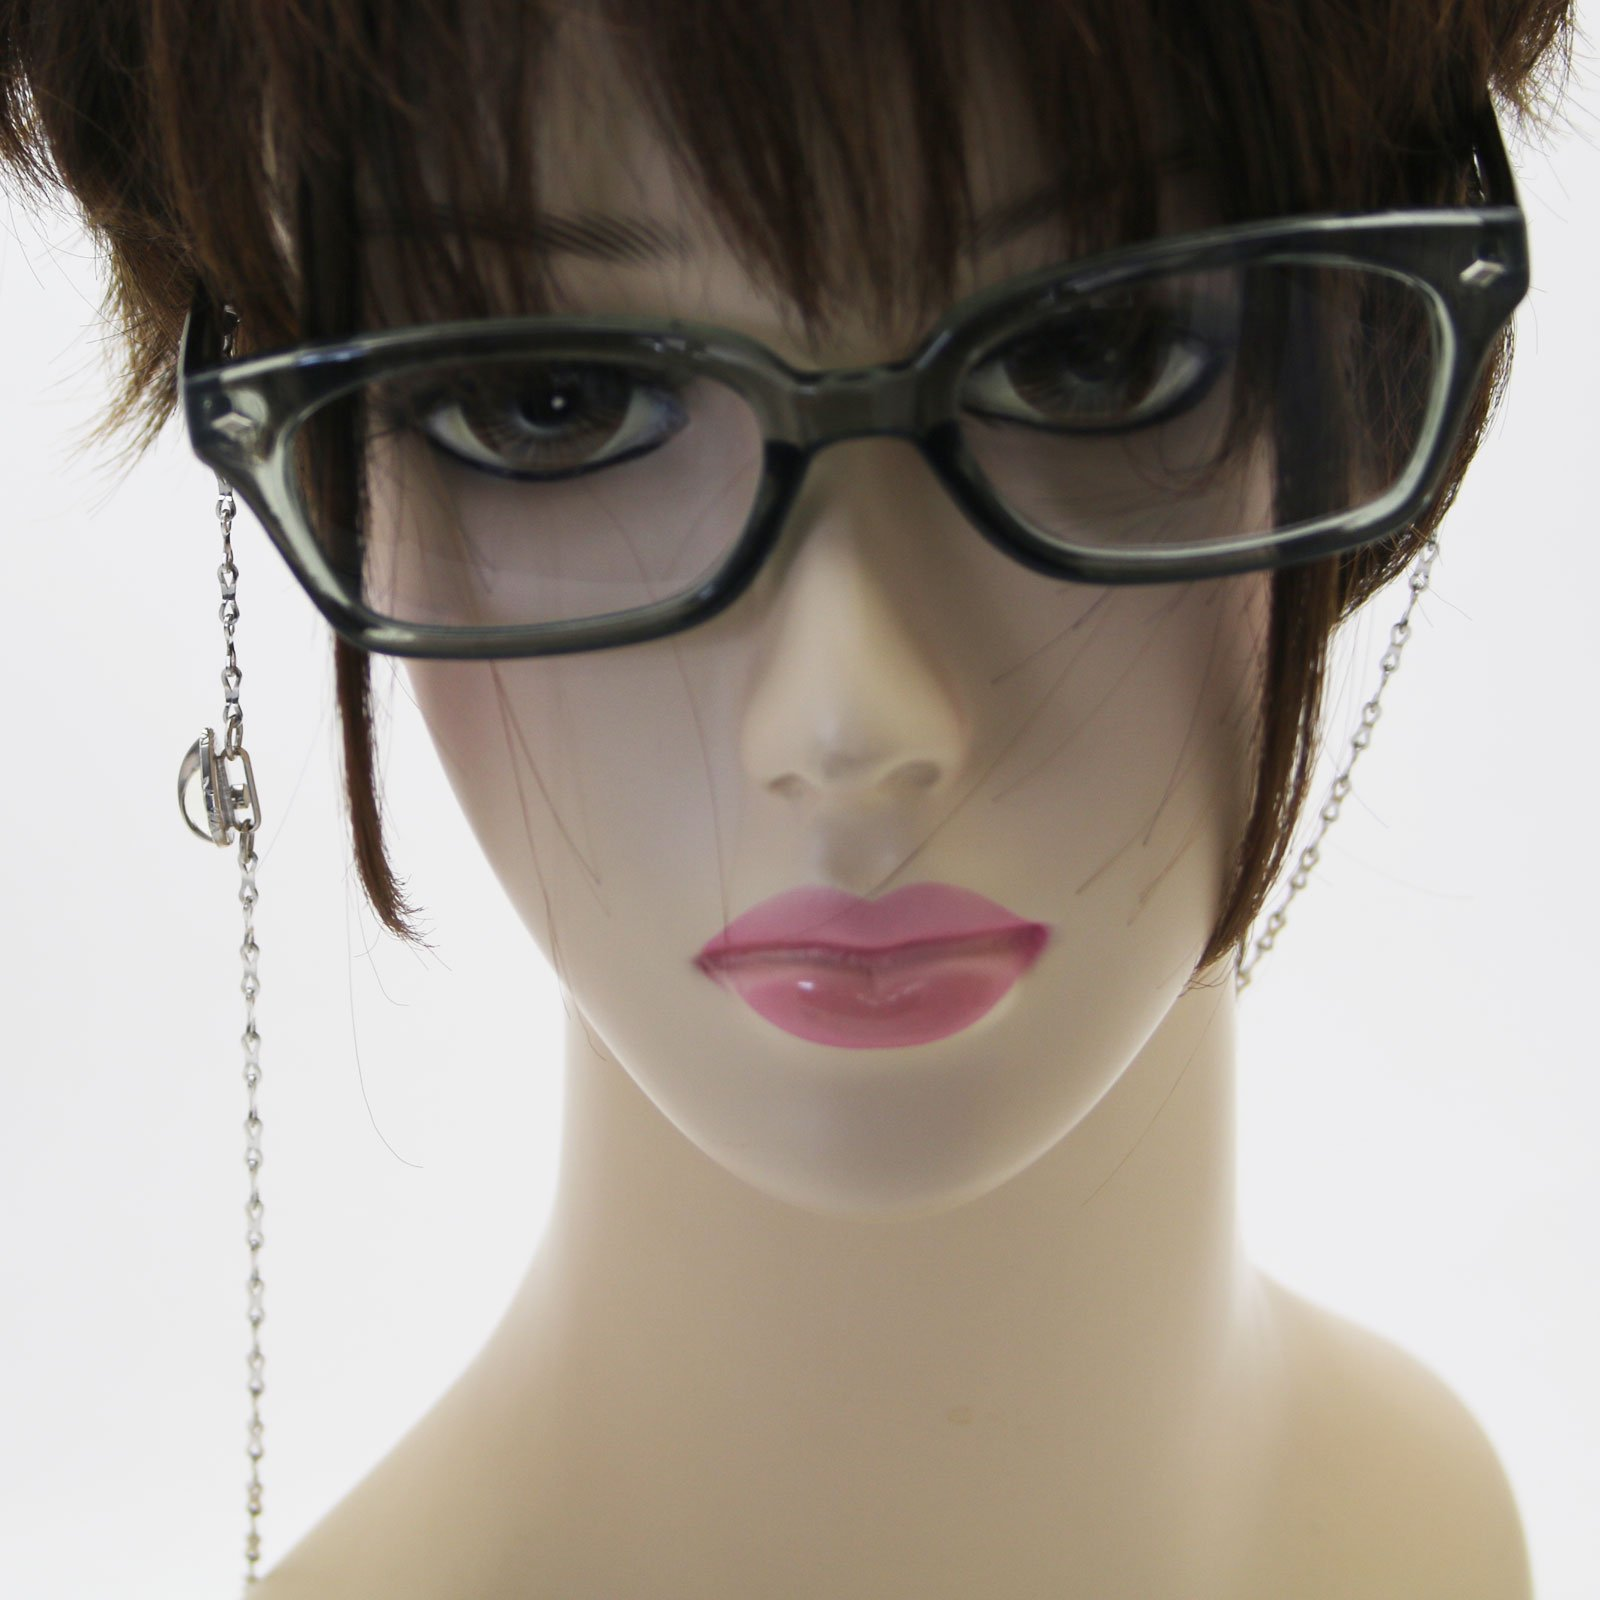 Tamarusan Eyewear Chain Lemon Pink Men'S Women'S Glass Holder by TAMARUSAN (Image #5)